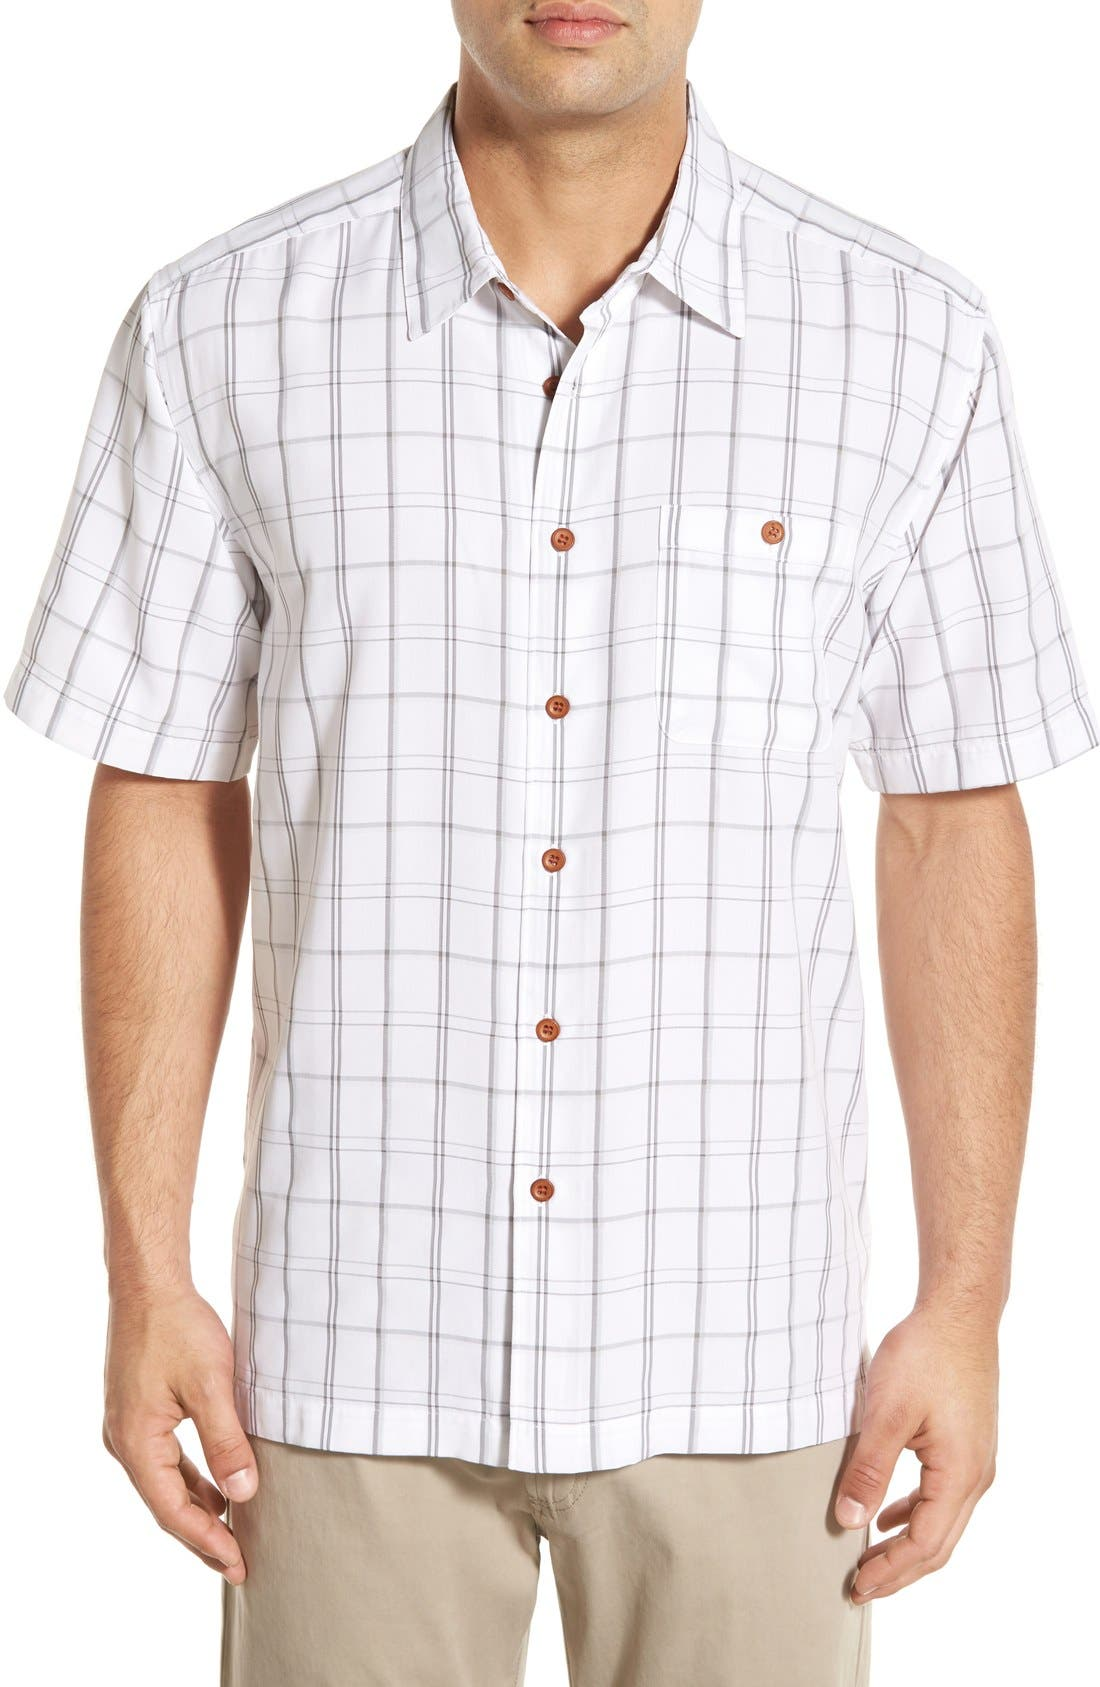 QUIKSILVER WATERMAN COLLECTION Crows Nest Regular Fit Plaid Sport Shirt